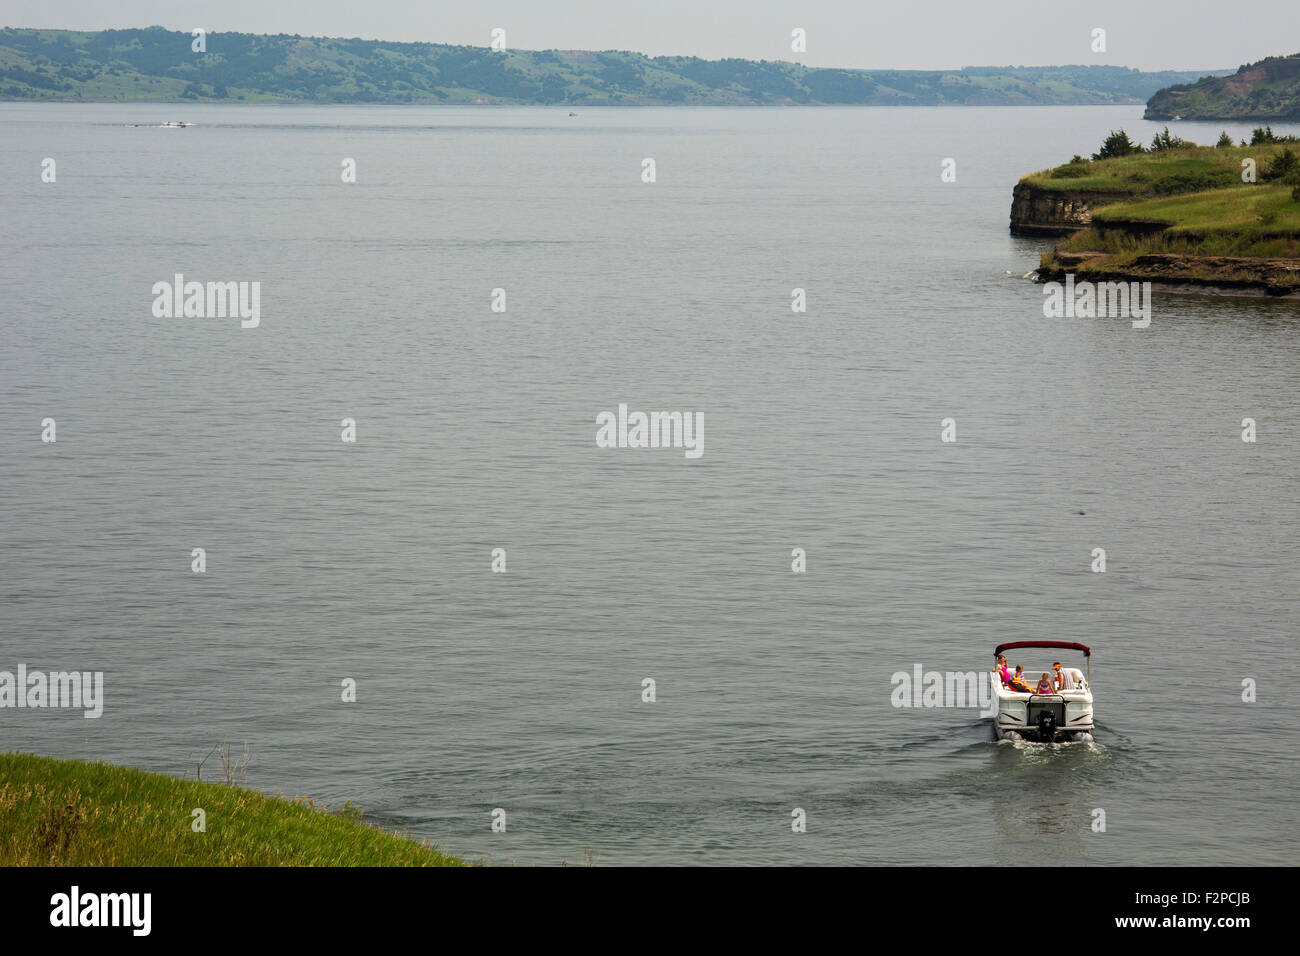 Gregory County, South Dakota - Boating on Lake Francis Case, a reservoir behind the Fort Randall Dam on the Missouri - Stock Image